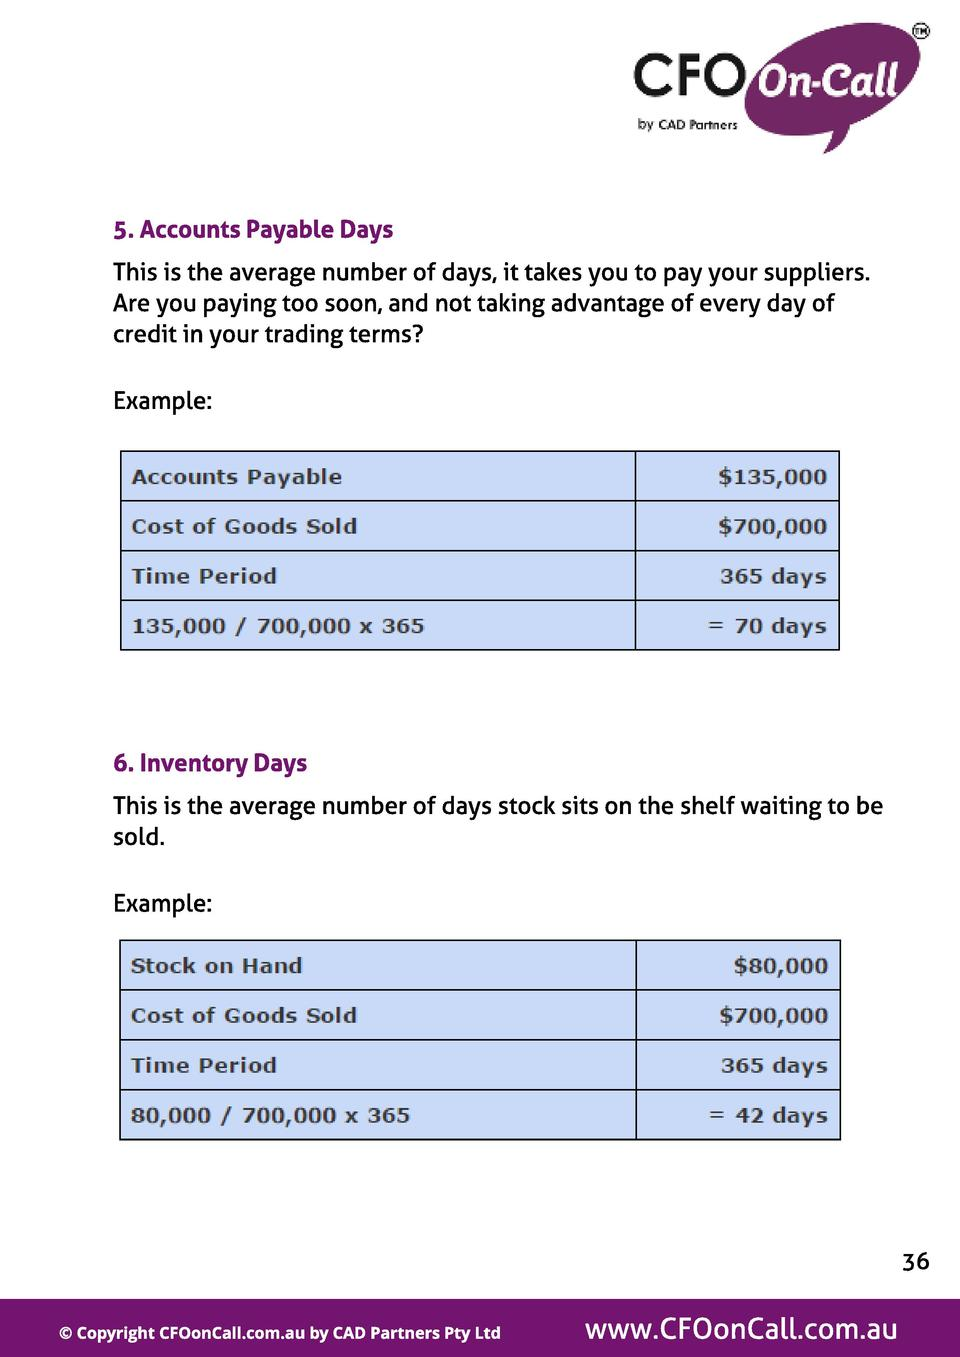 5. Account s Payabl e Days This is the average number of days, it takes you to pay your suppliers. Are you paying too soon...